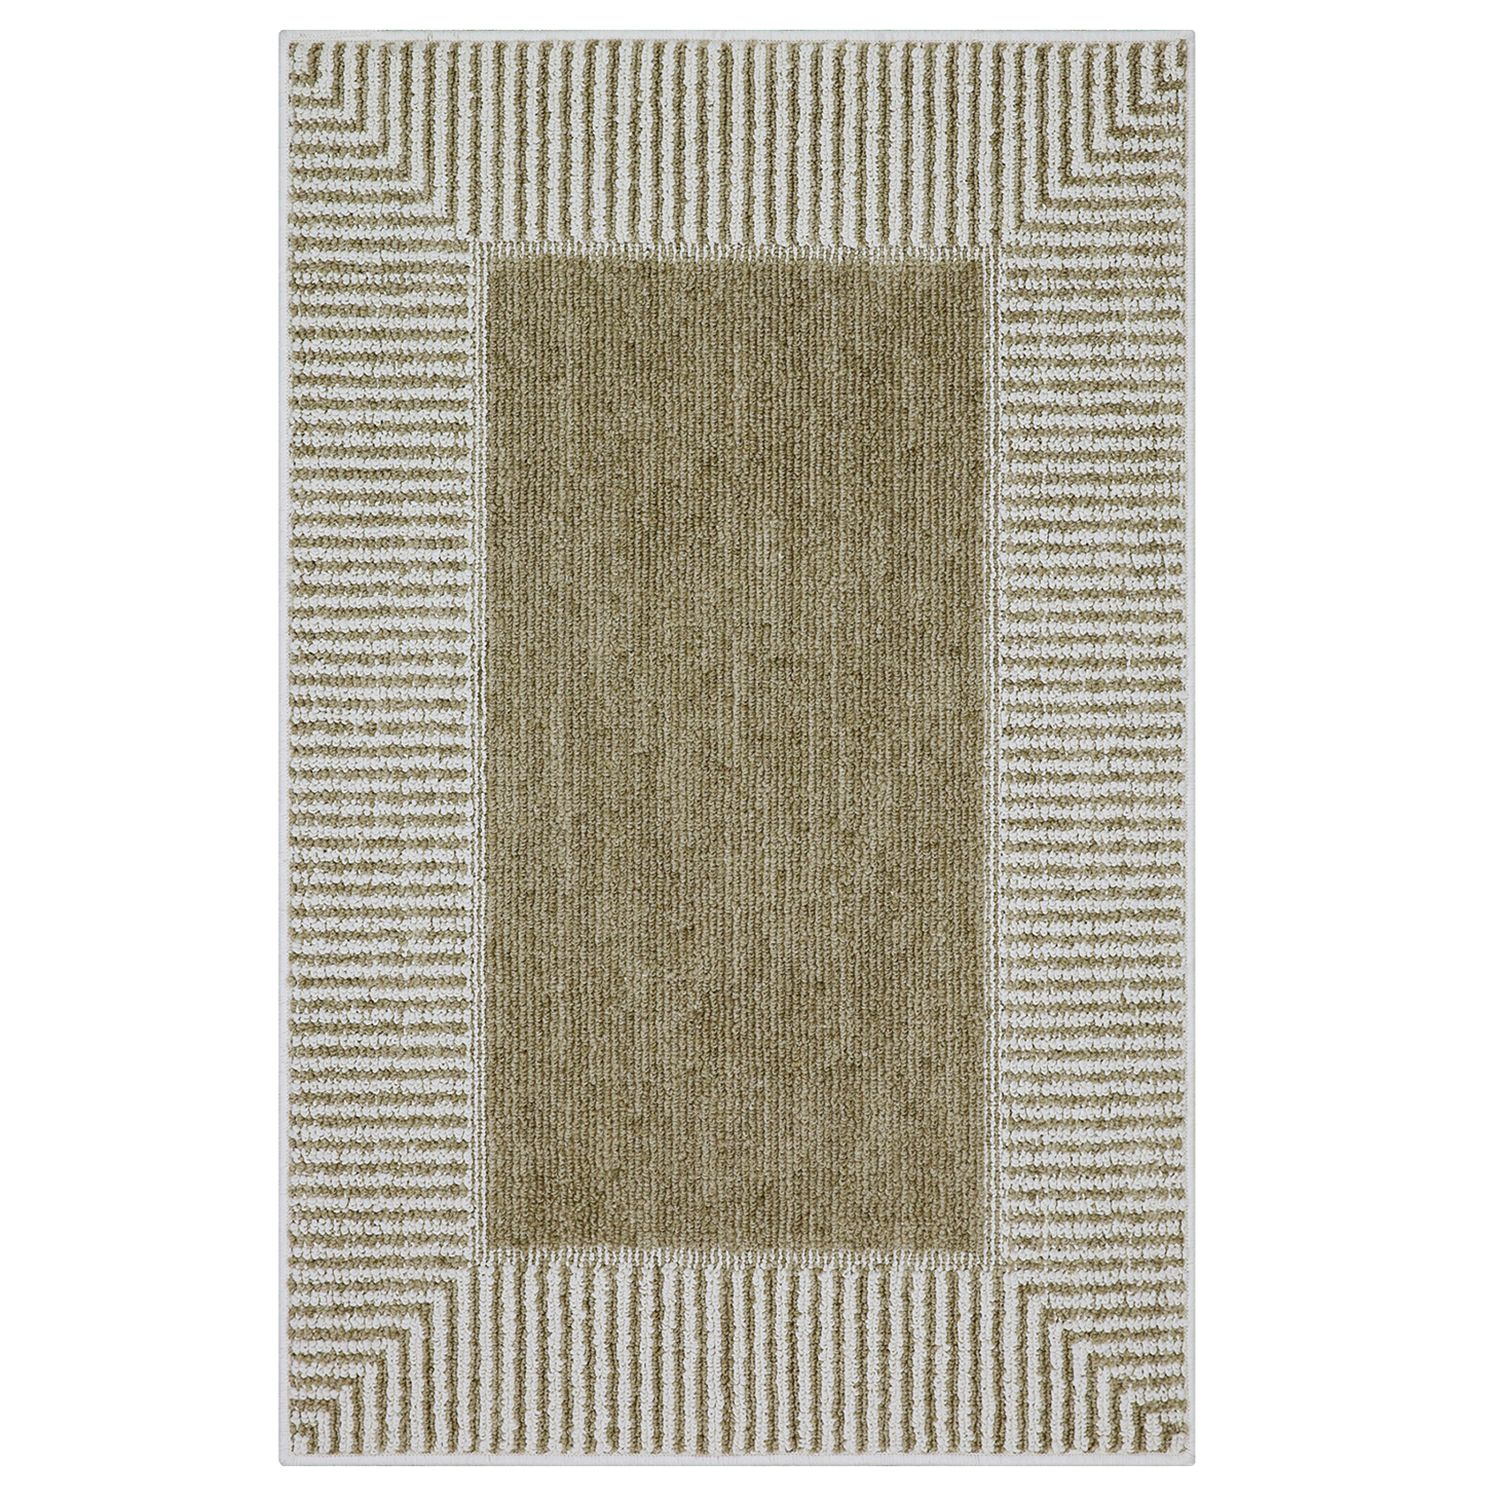 Captivating Maples Encore Striped Border Rug